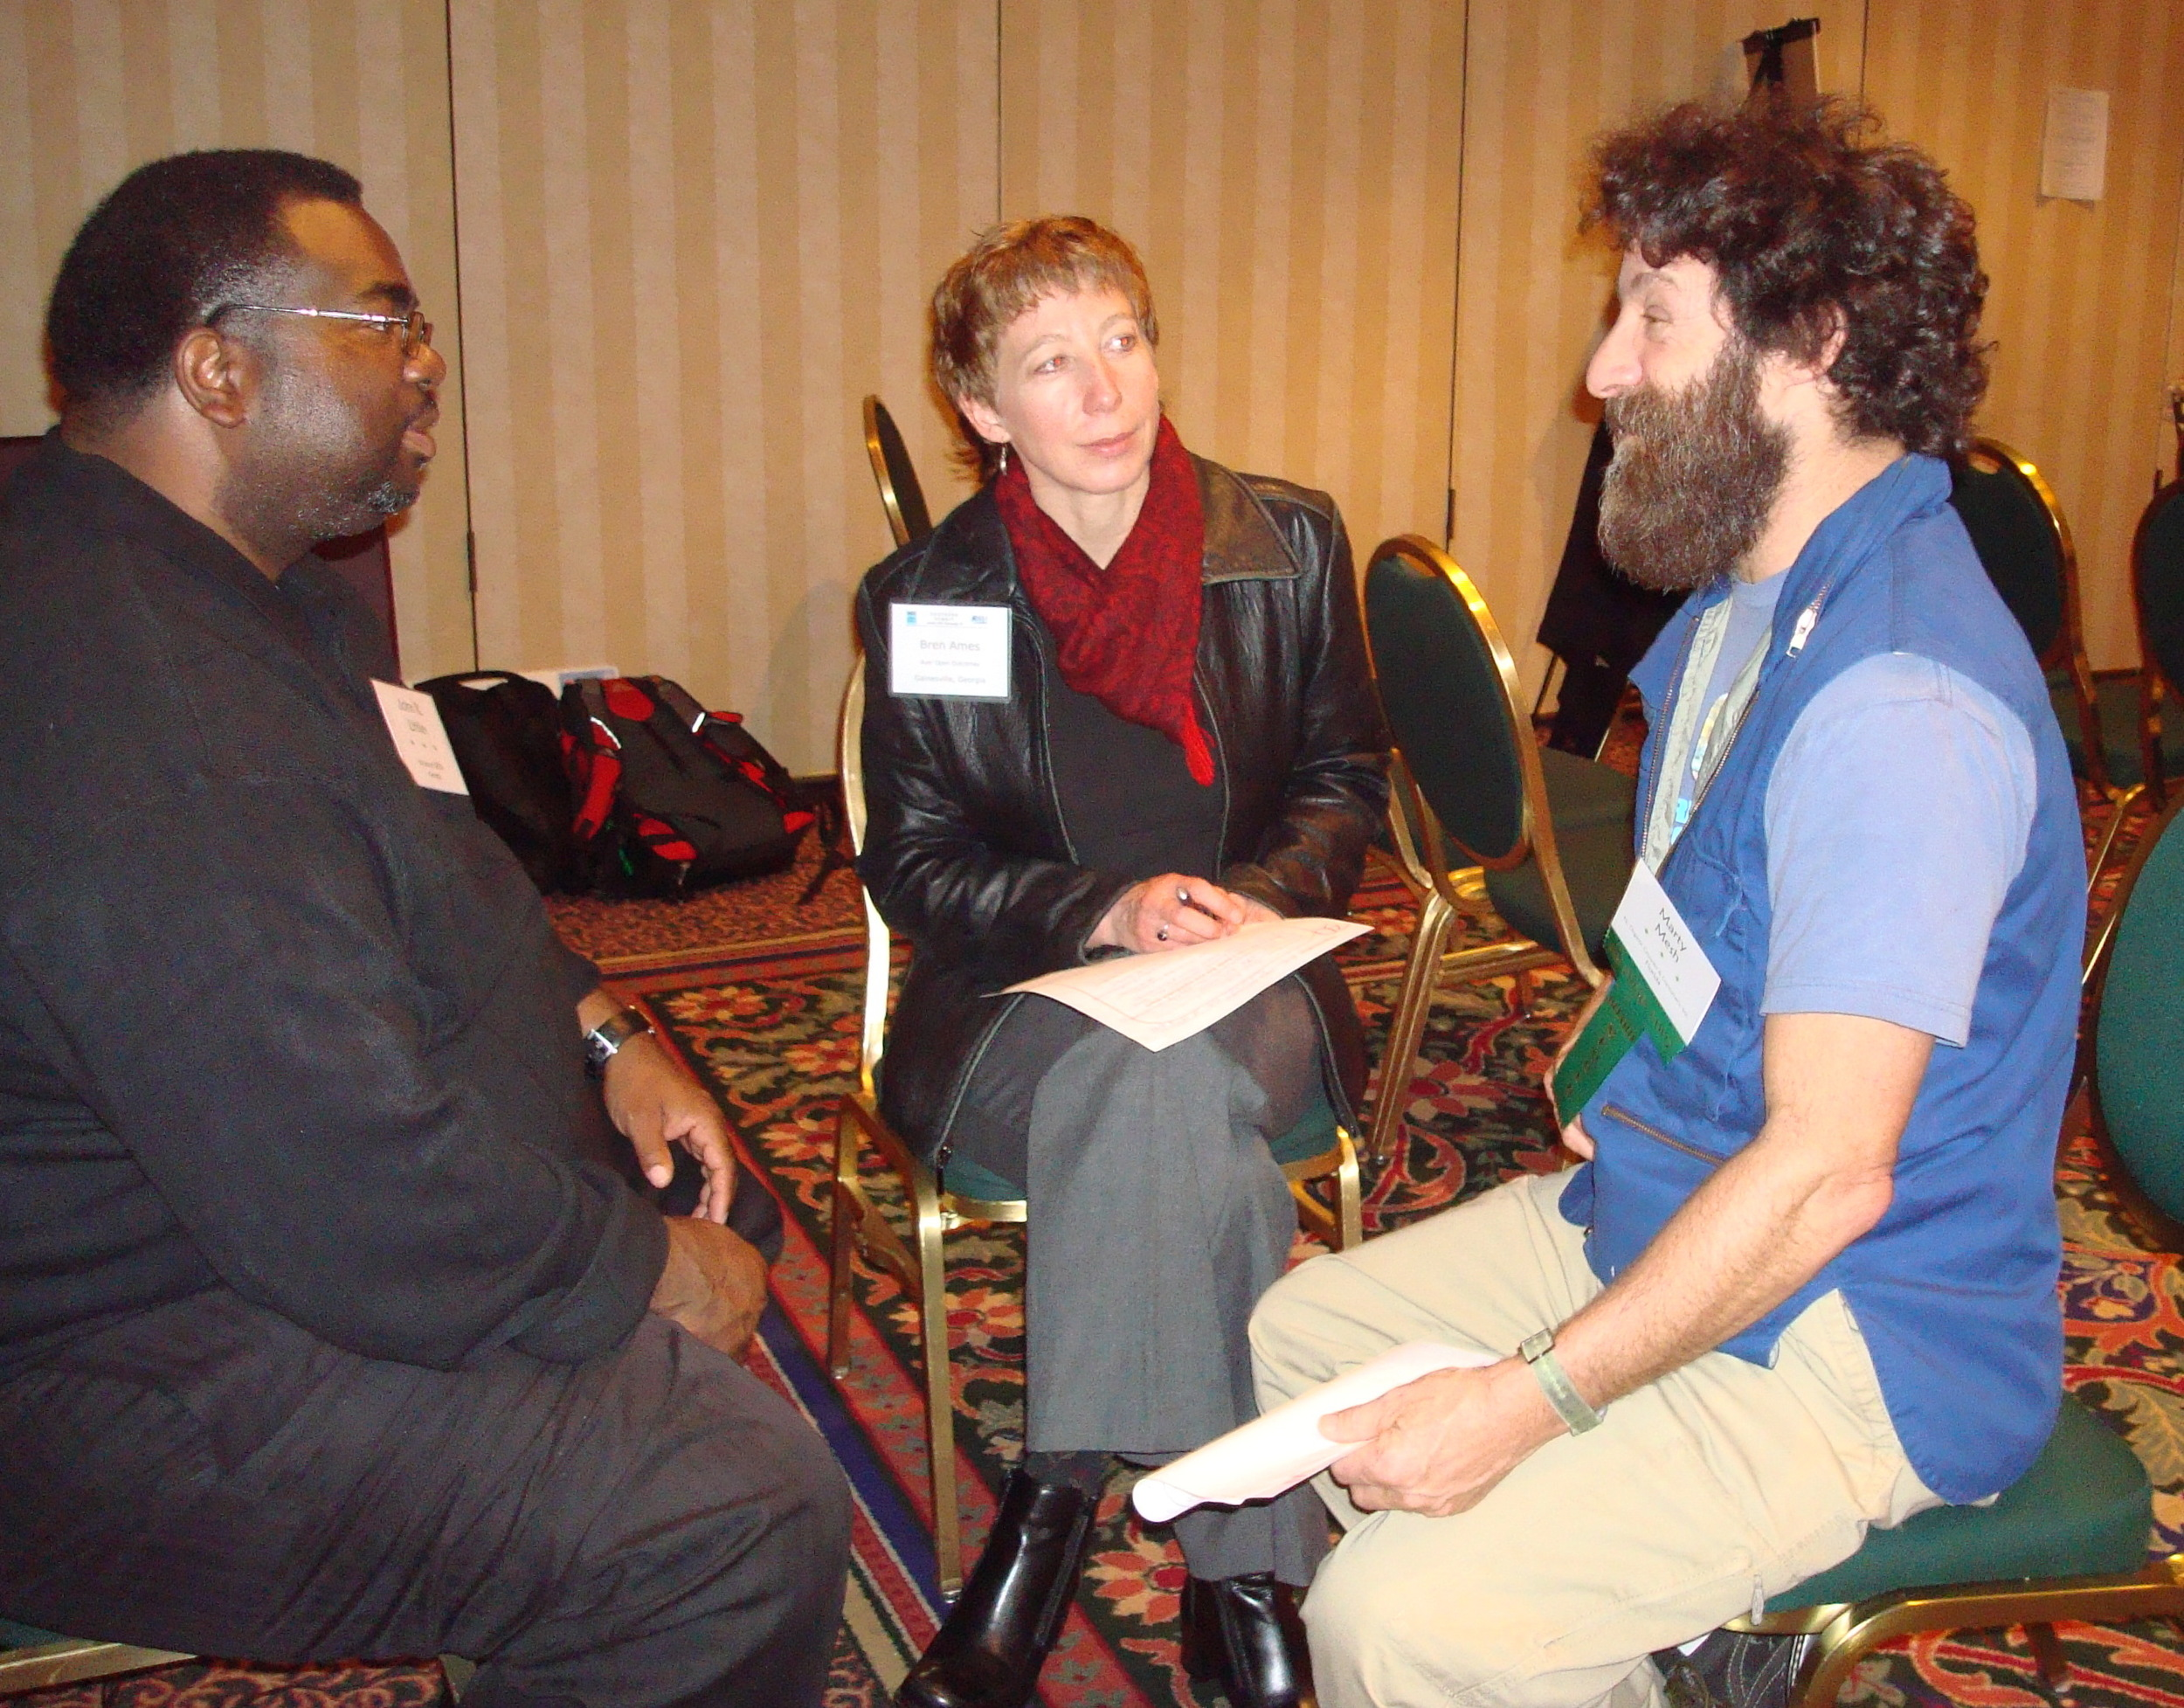 Networking at 2011 conf 2.JPG